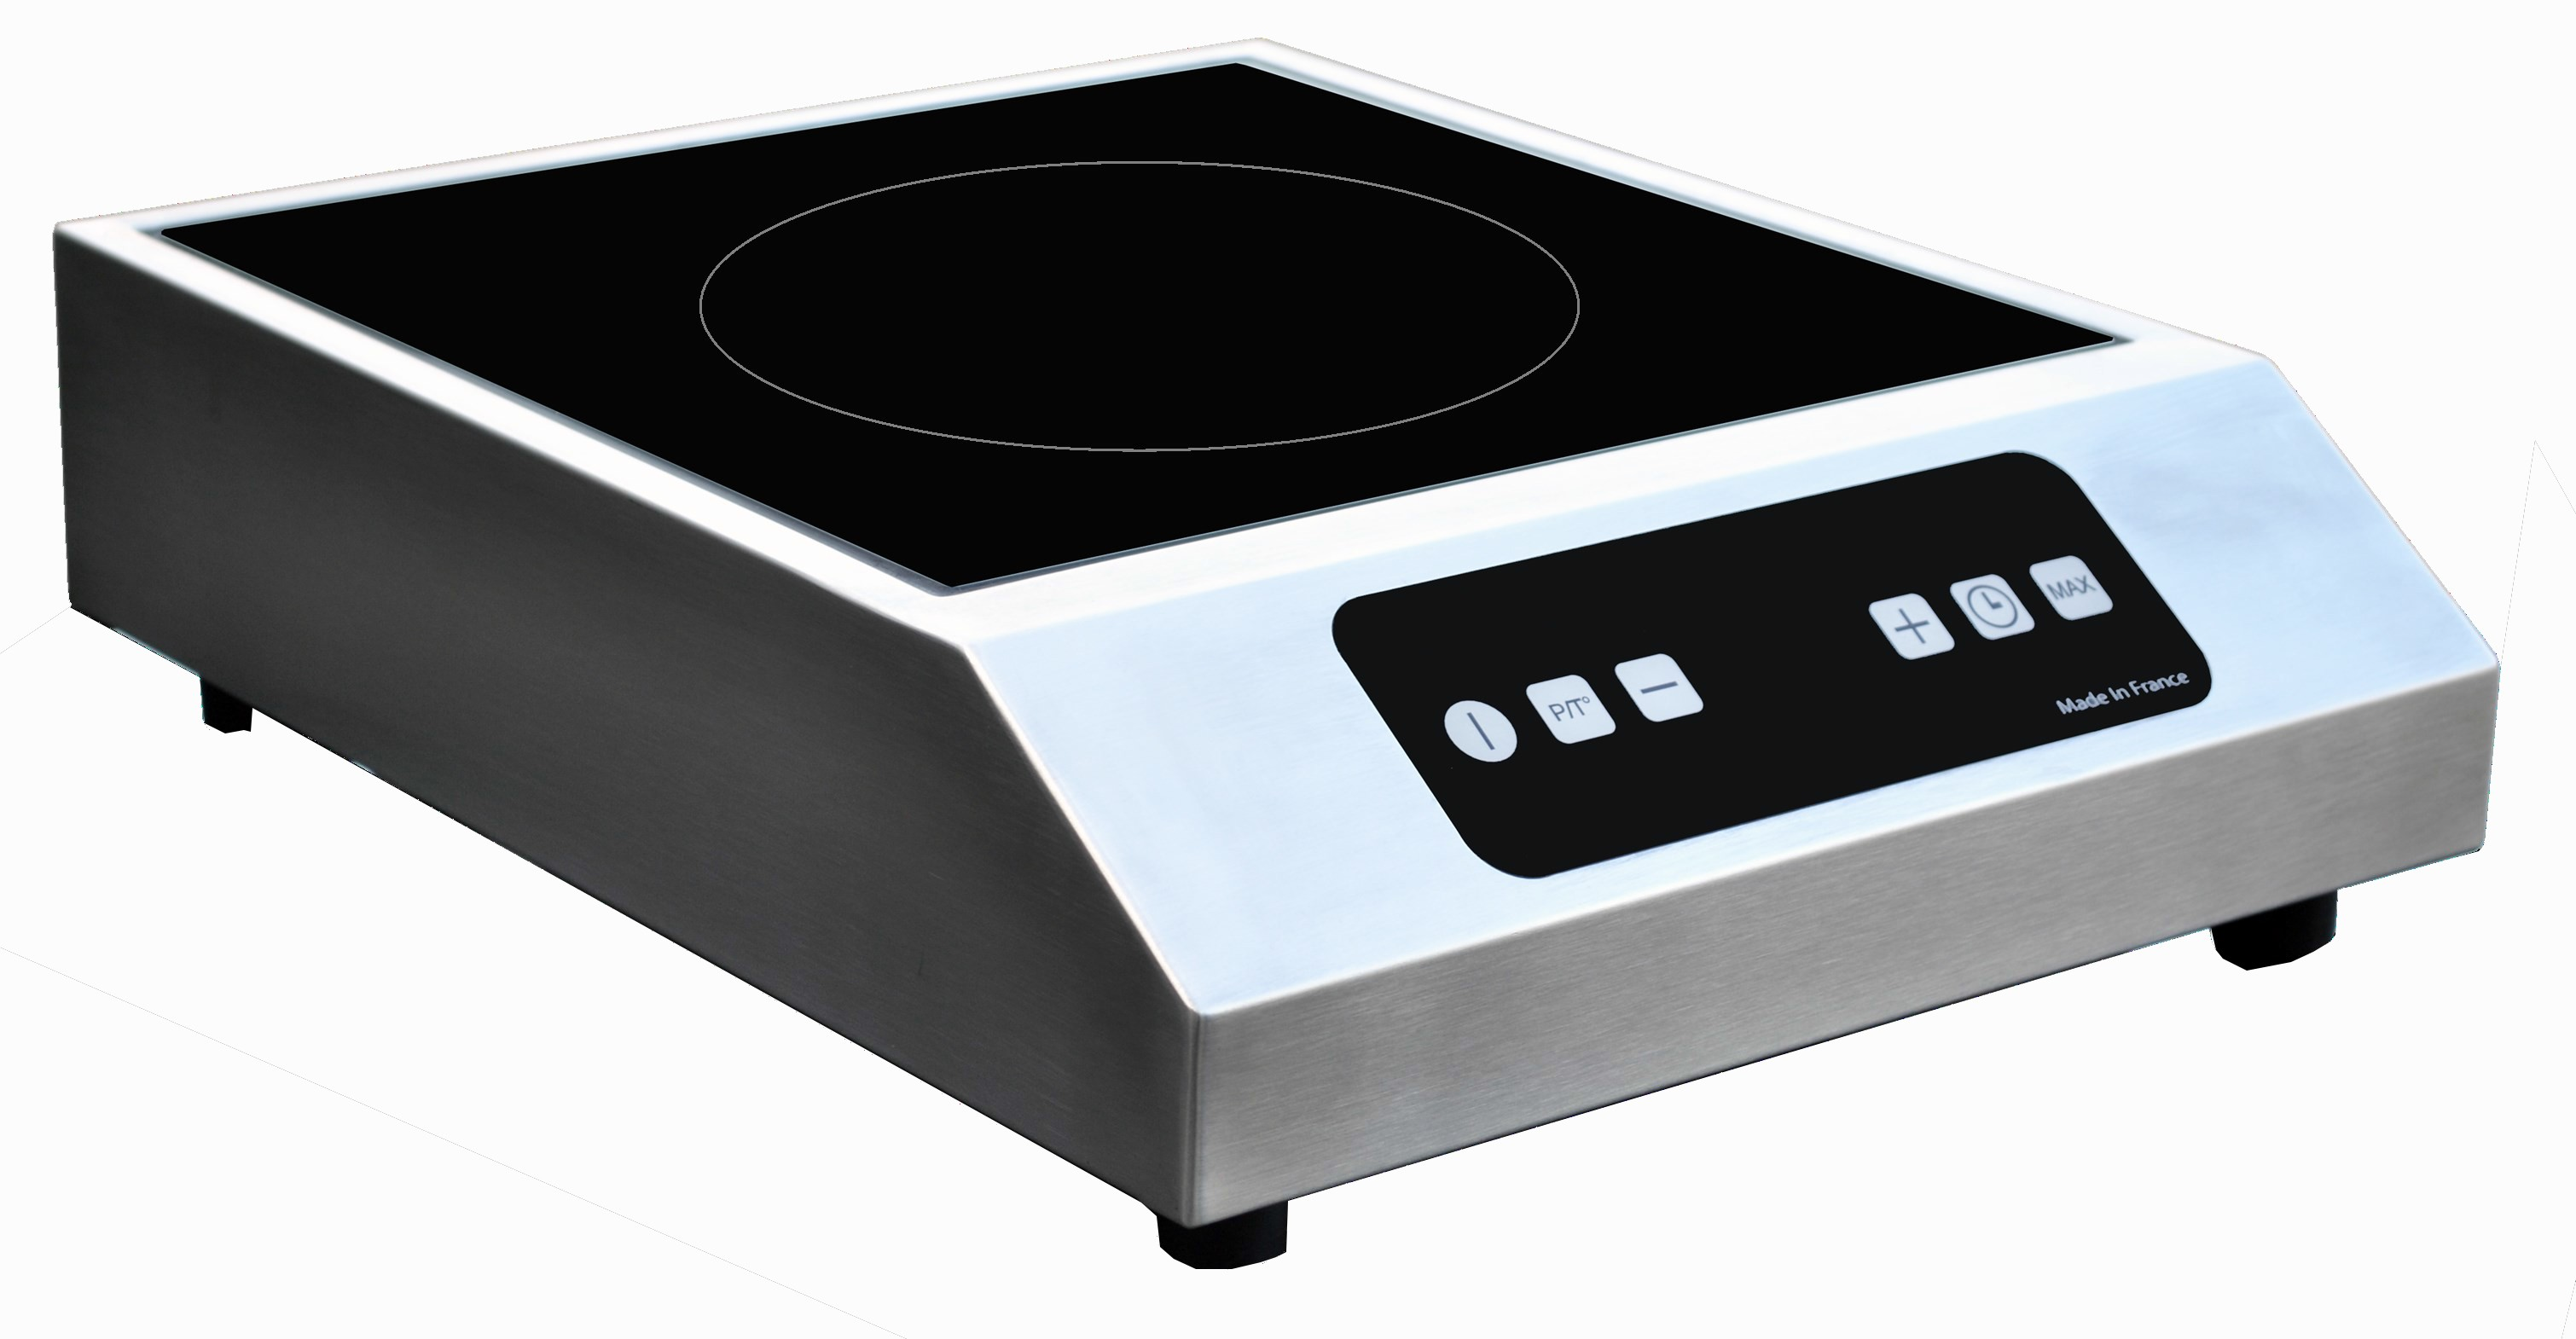 Comment Choisir Table De Cuisson Induction plaque induction, gamme gln 2500, 1 foyer induction, 230 v